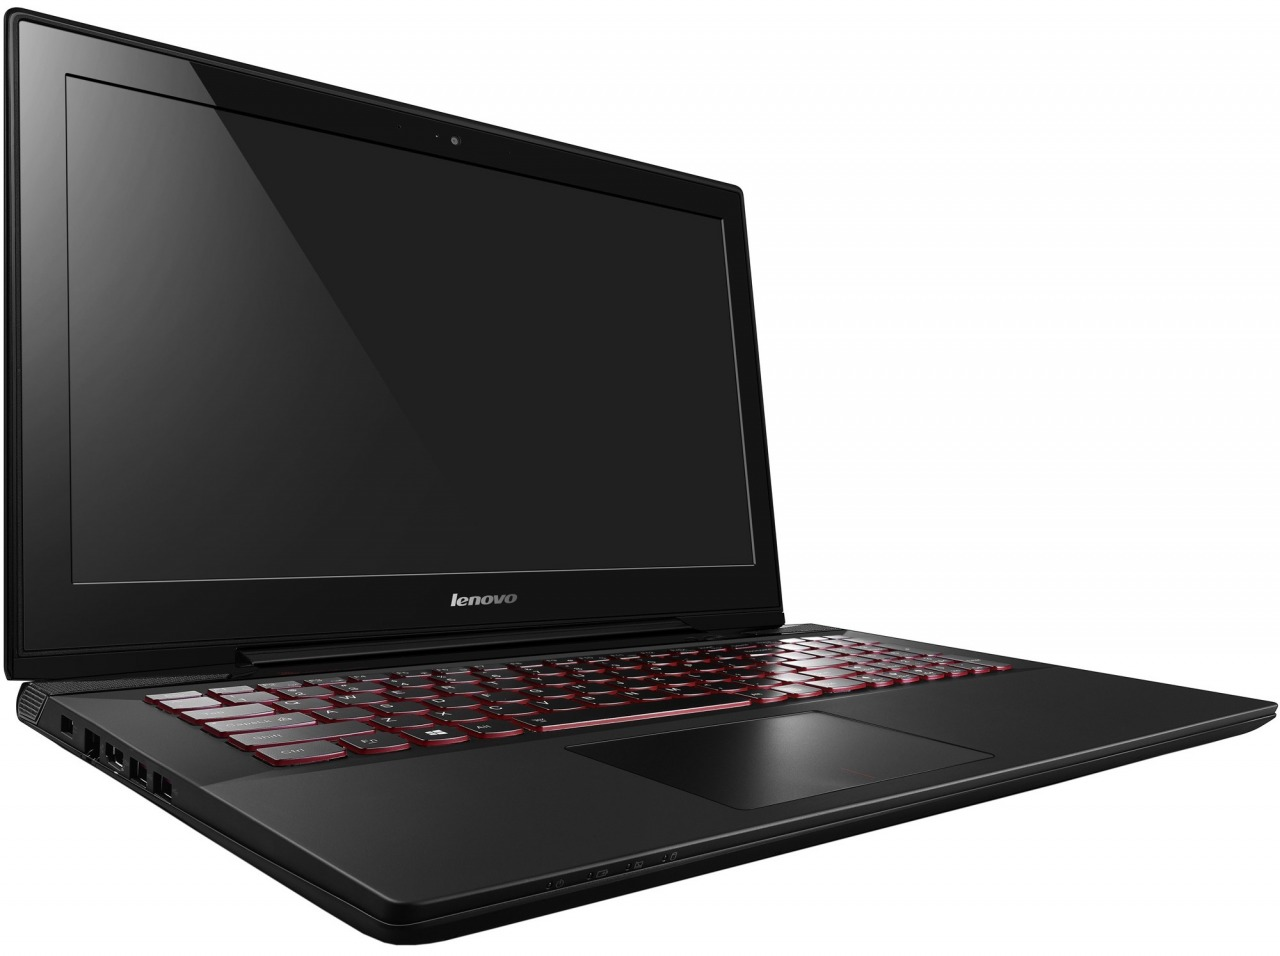 laptop lenovo y5070 _2.jpg